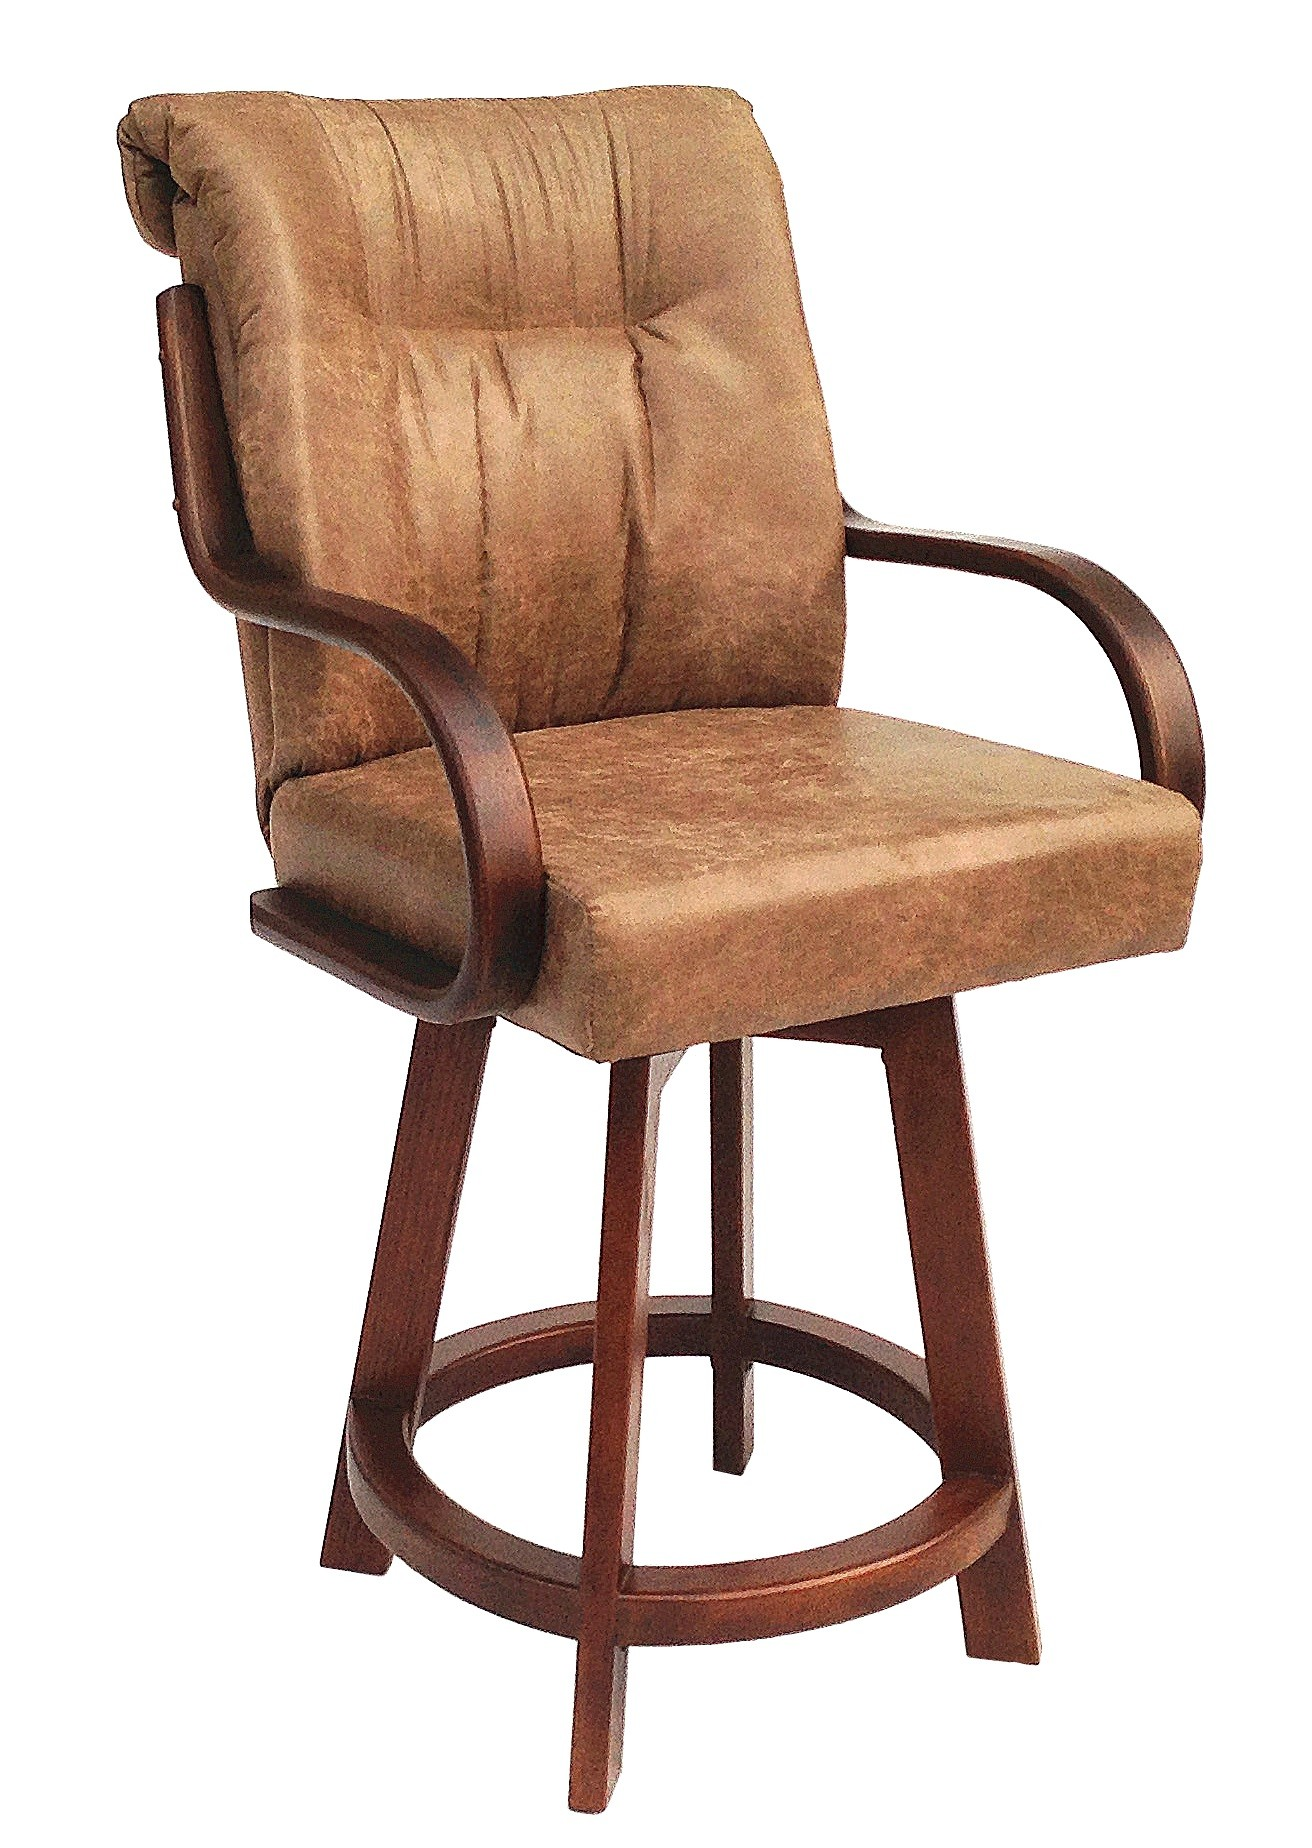 Chromcraft Furniture C179 384 Swivel 26 Quot Wood Bar Stool